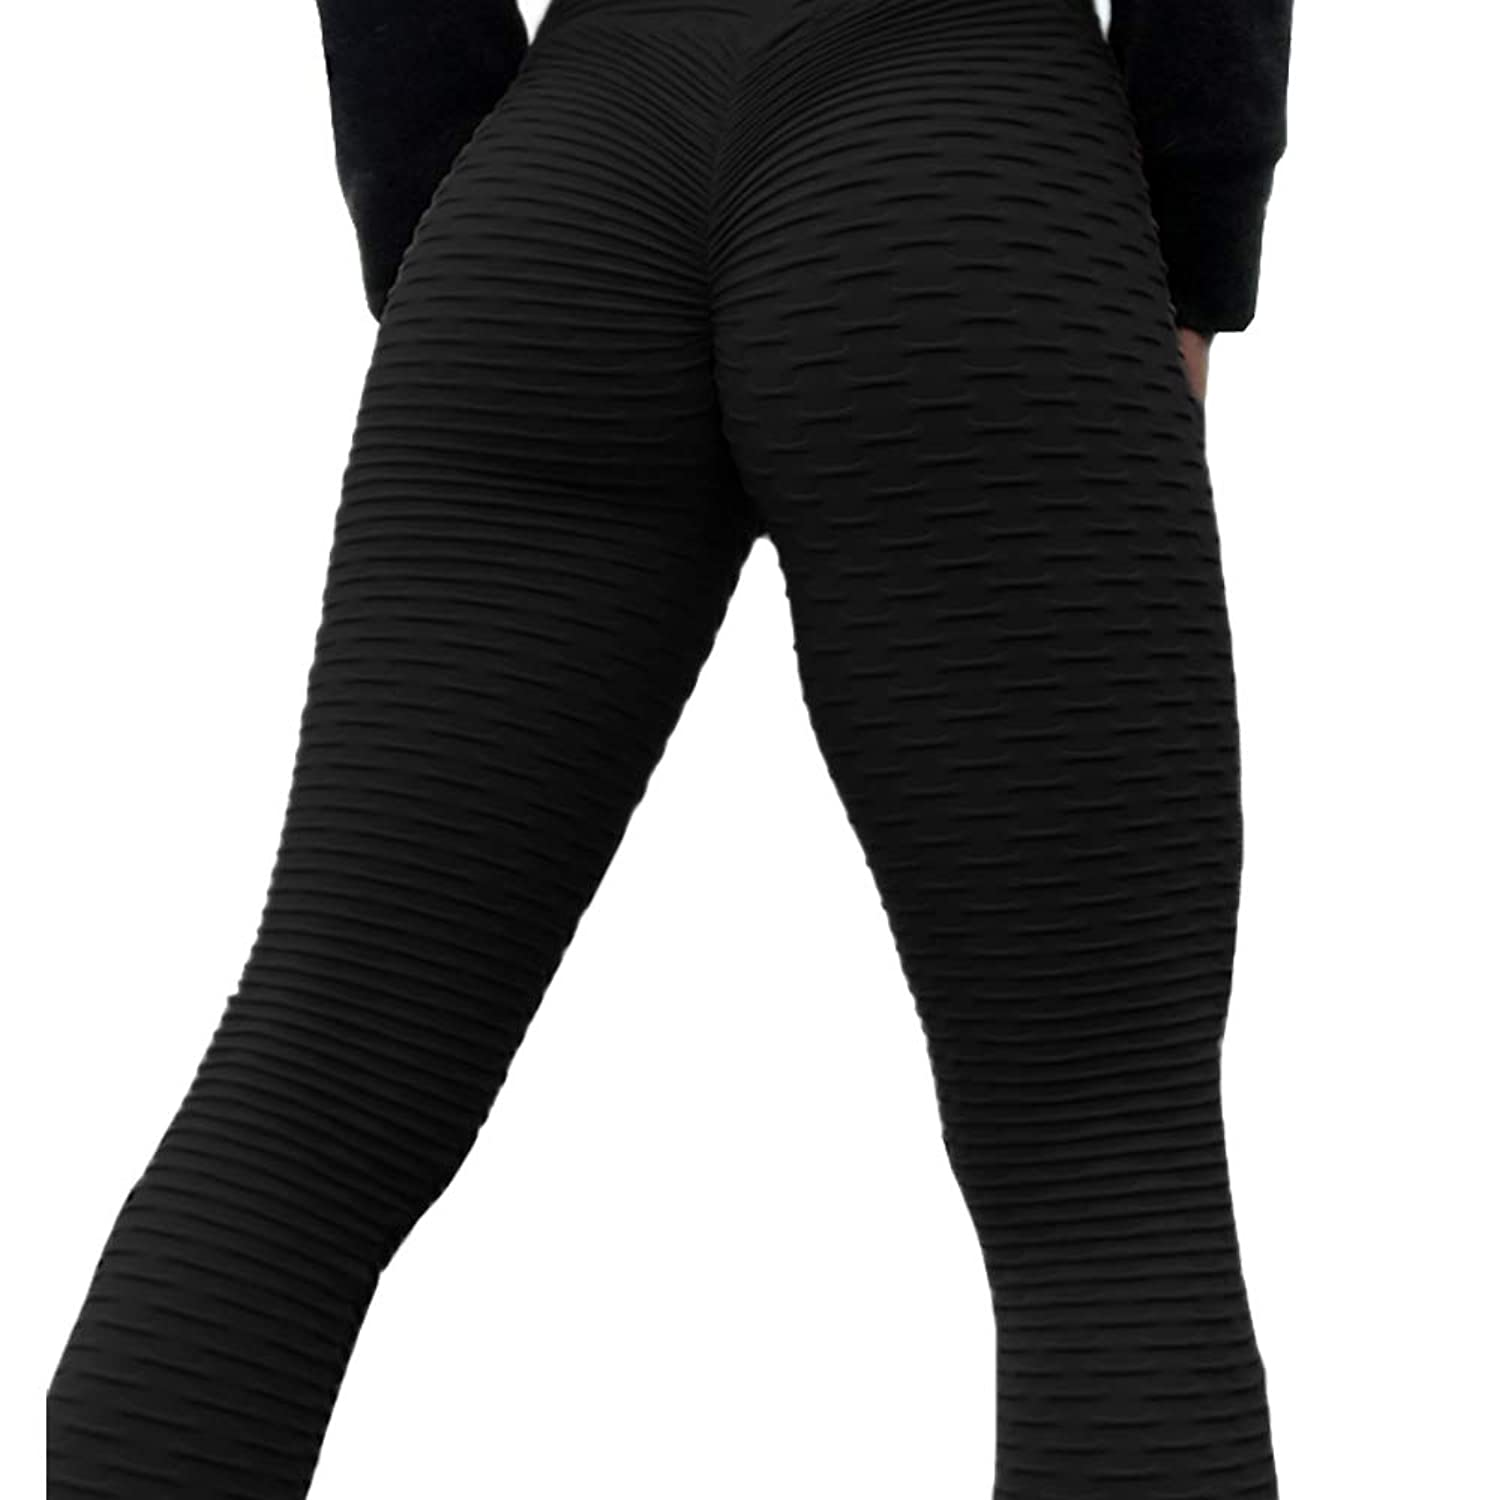 a9532f69f5 Active high waist yoga pants leggings for women: made of high performance  Texture fabric. These spandex leggings are sleek and feel like satin on the  skin.